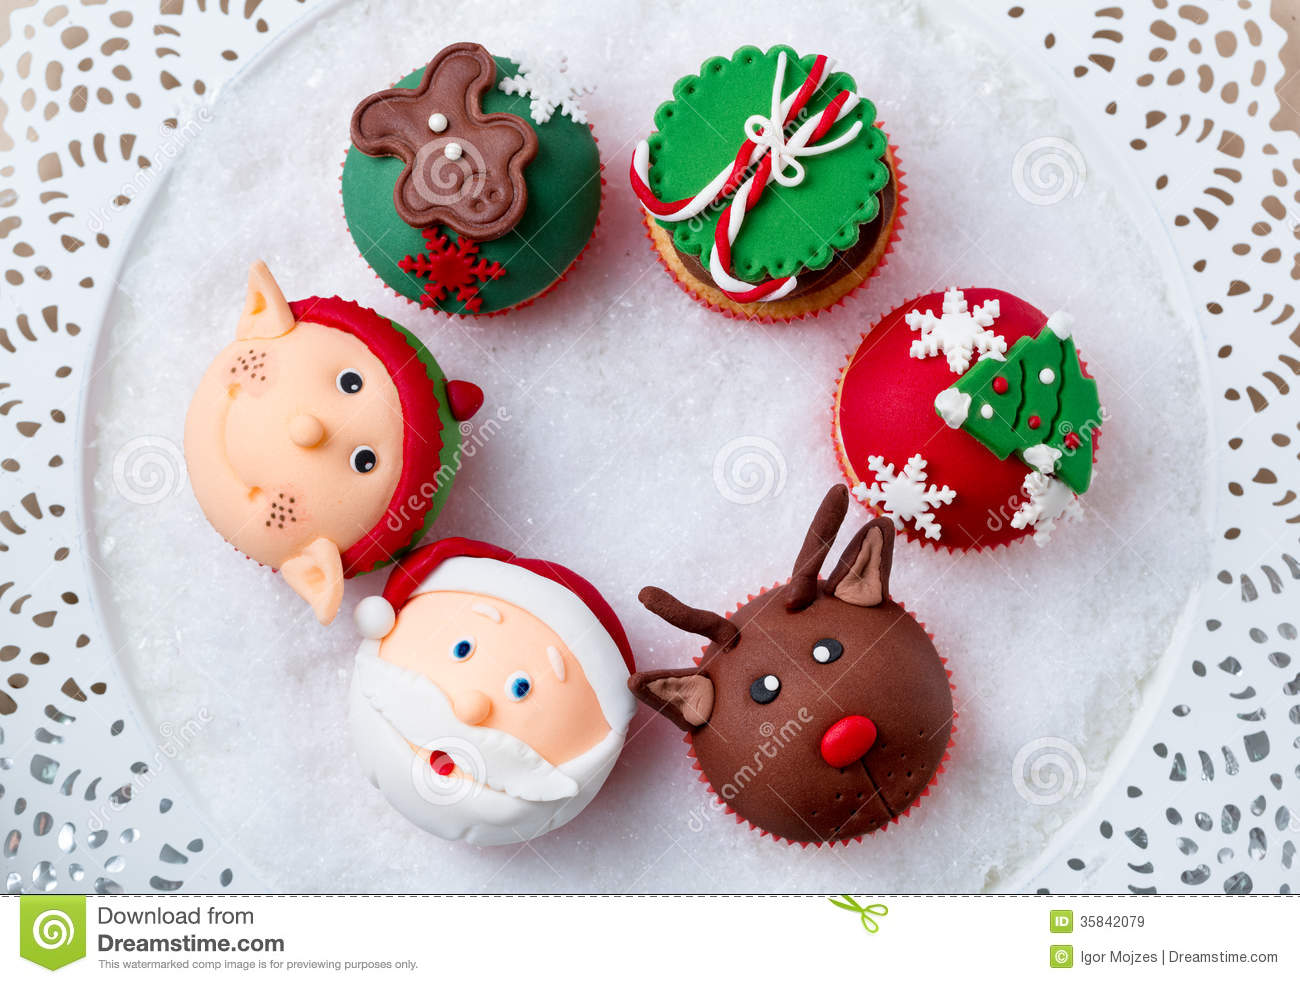 Download Festive Christmas cupcakes stock image. Image of decorative - 35842079